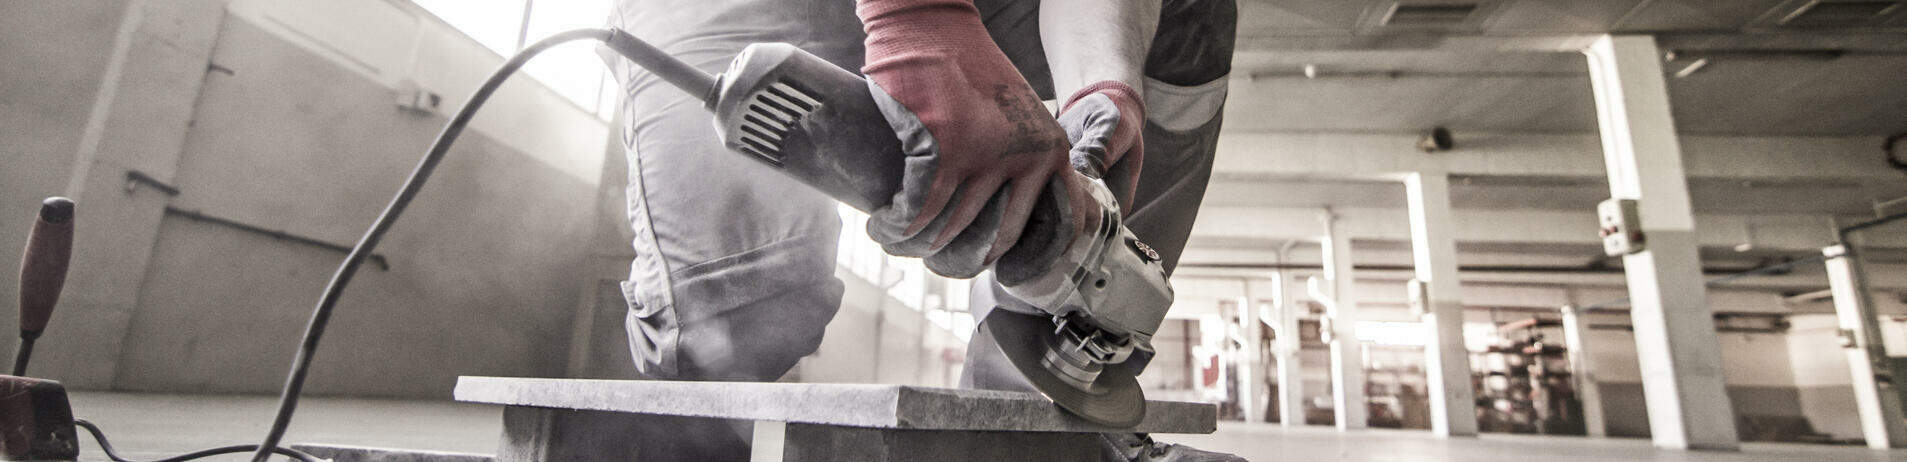 Cutting and grinding with the best tiling tools